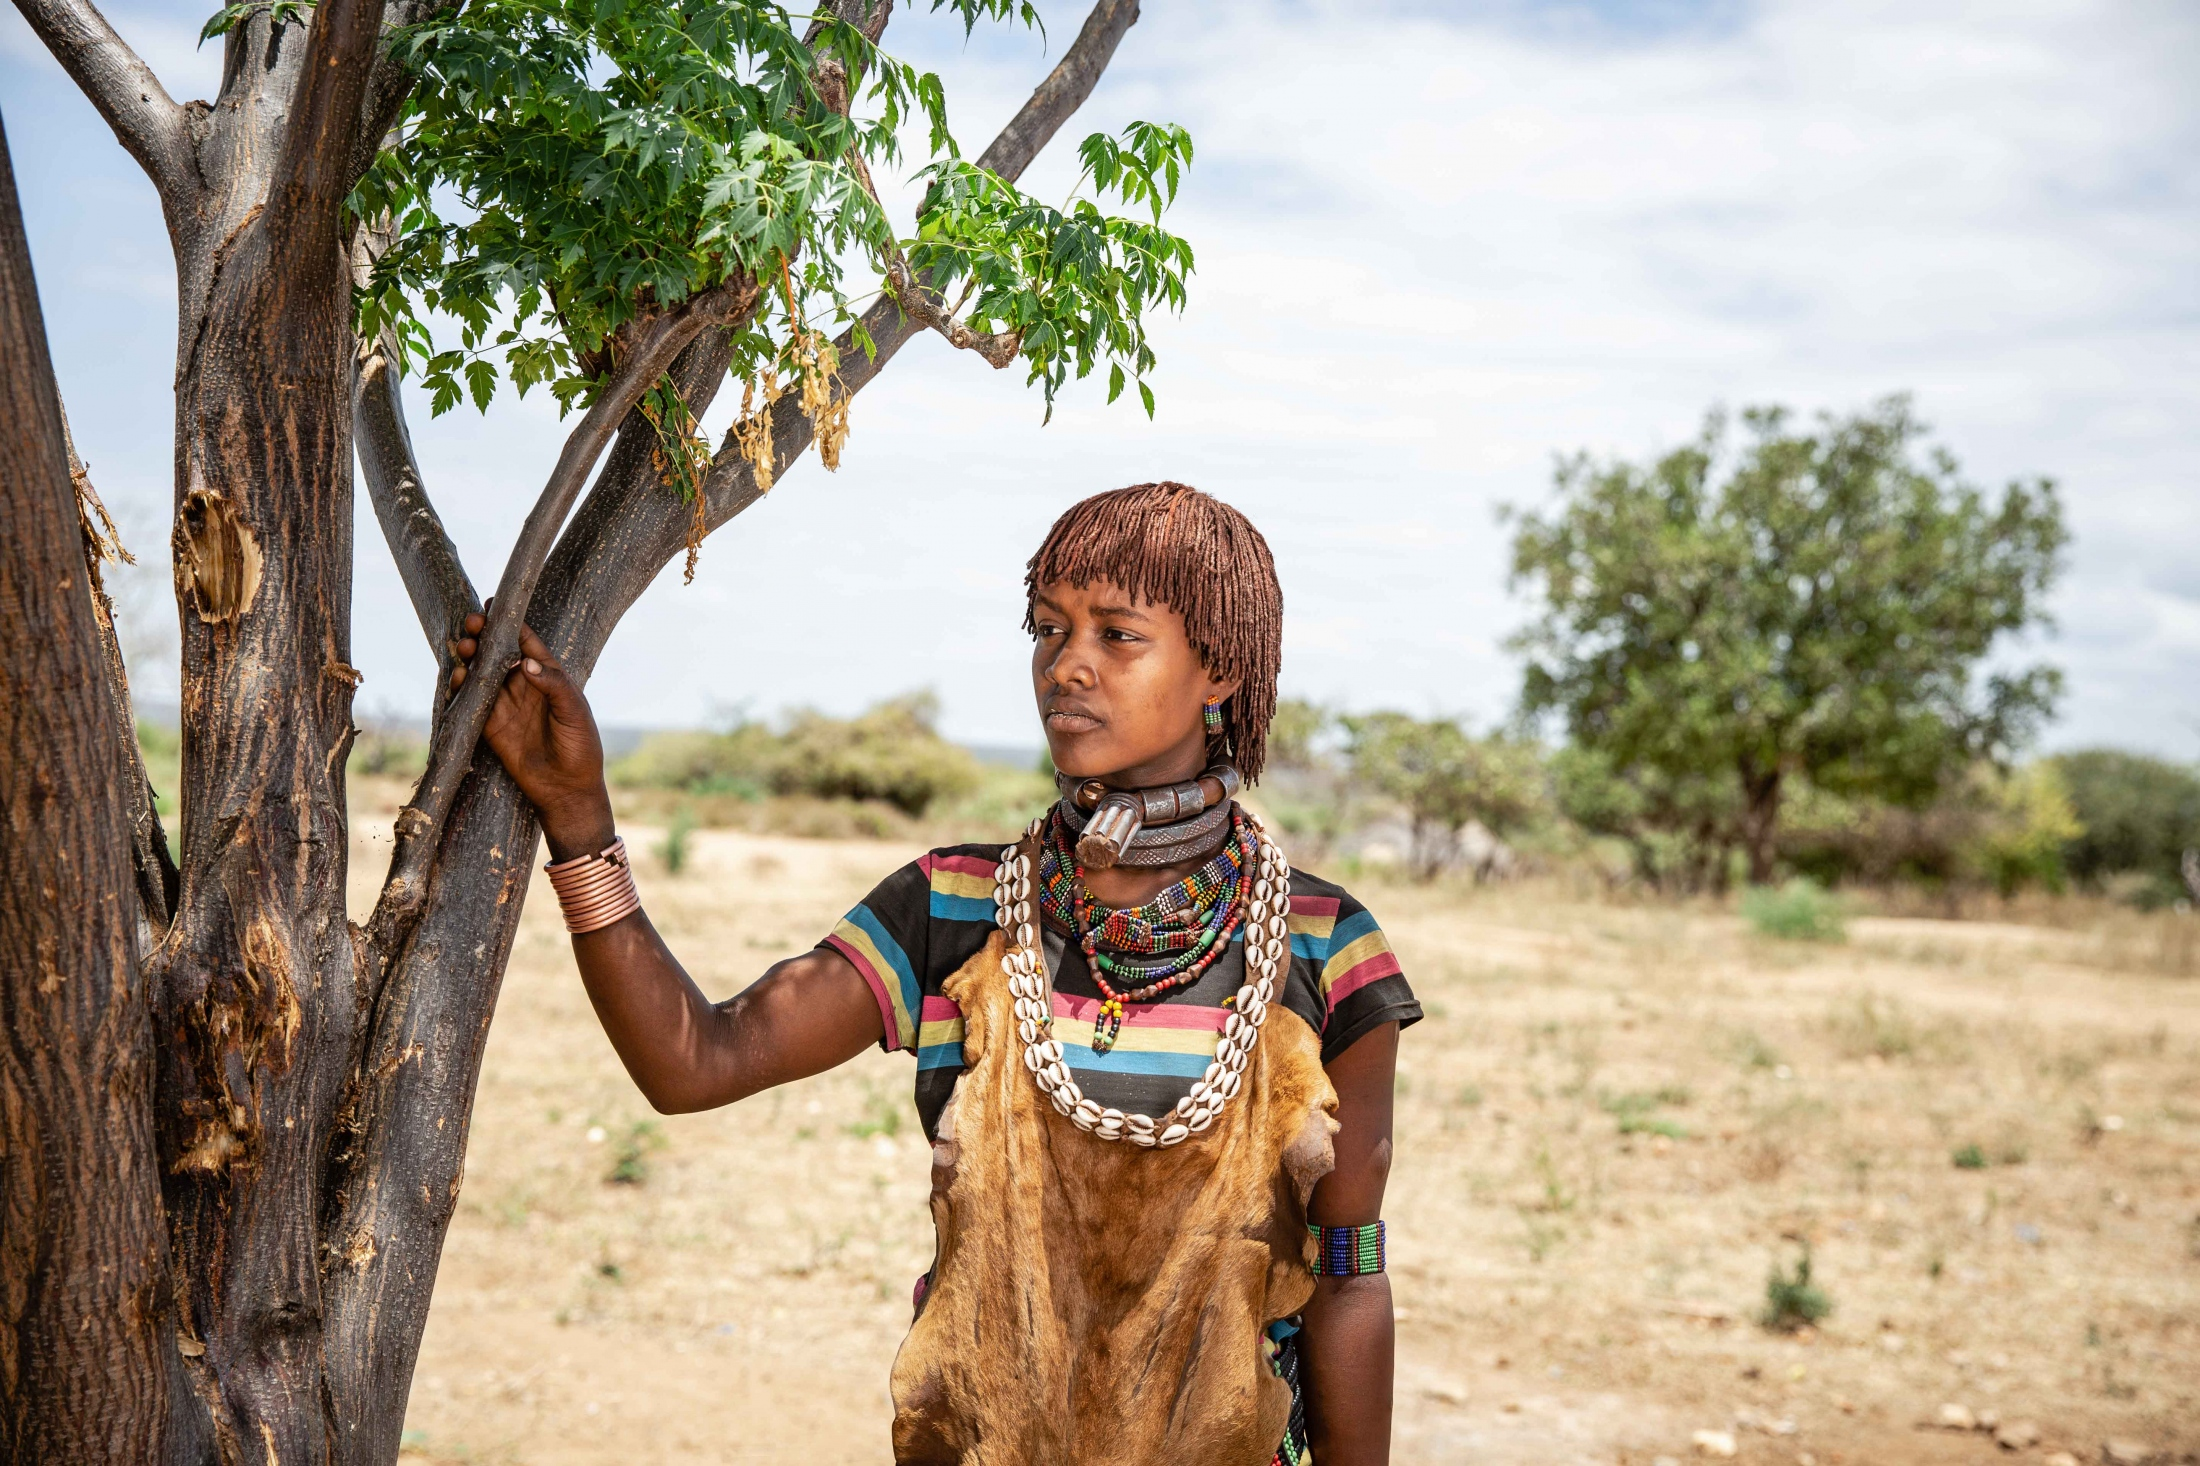 Portrait of Awga in South Omo region, Ethiopia. As primary care-givers, women are the key to tackling the severe poverty that families in South Omo face, and with the help of Farm Africa's Livestock for Livelihoods project, they can be able to. For Farm Africa.